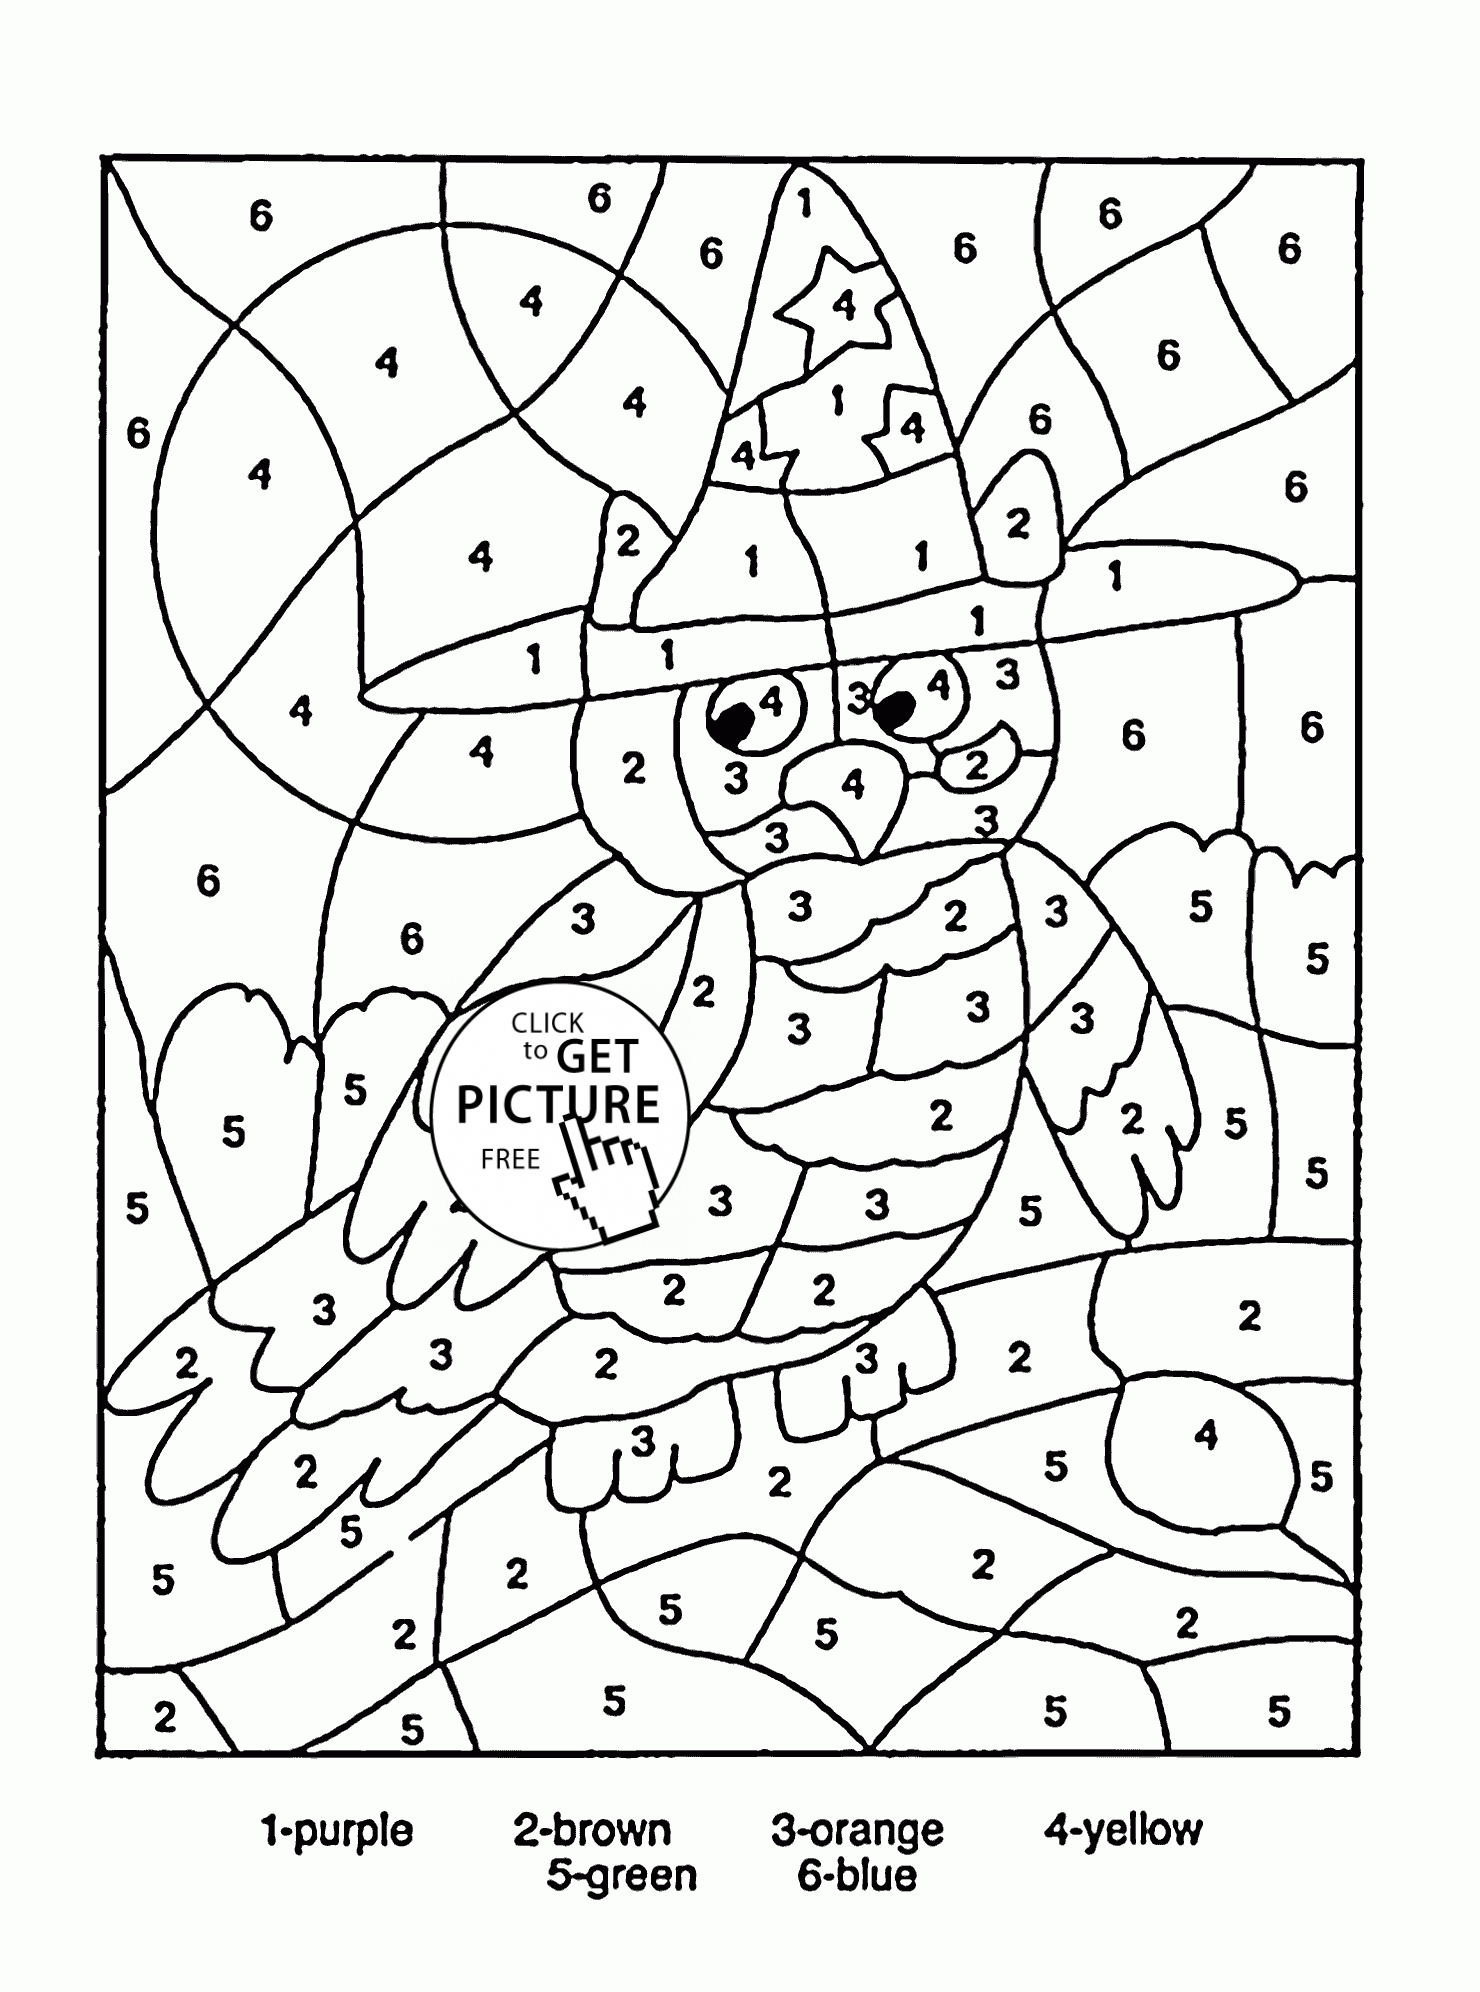 coloring by number for kids color by numbers elephant coloring page for kids printable coloring for number by kids